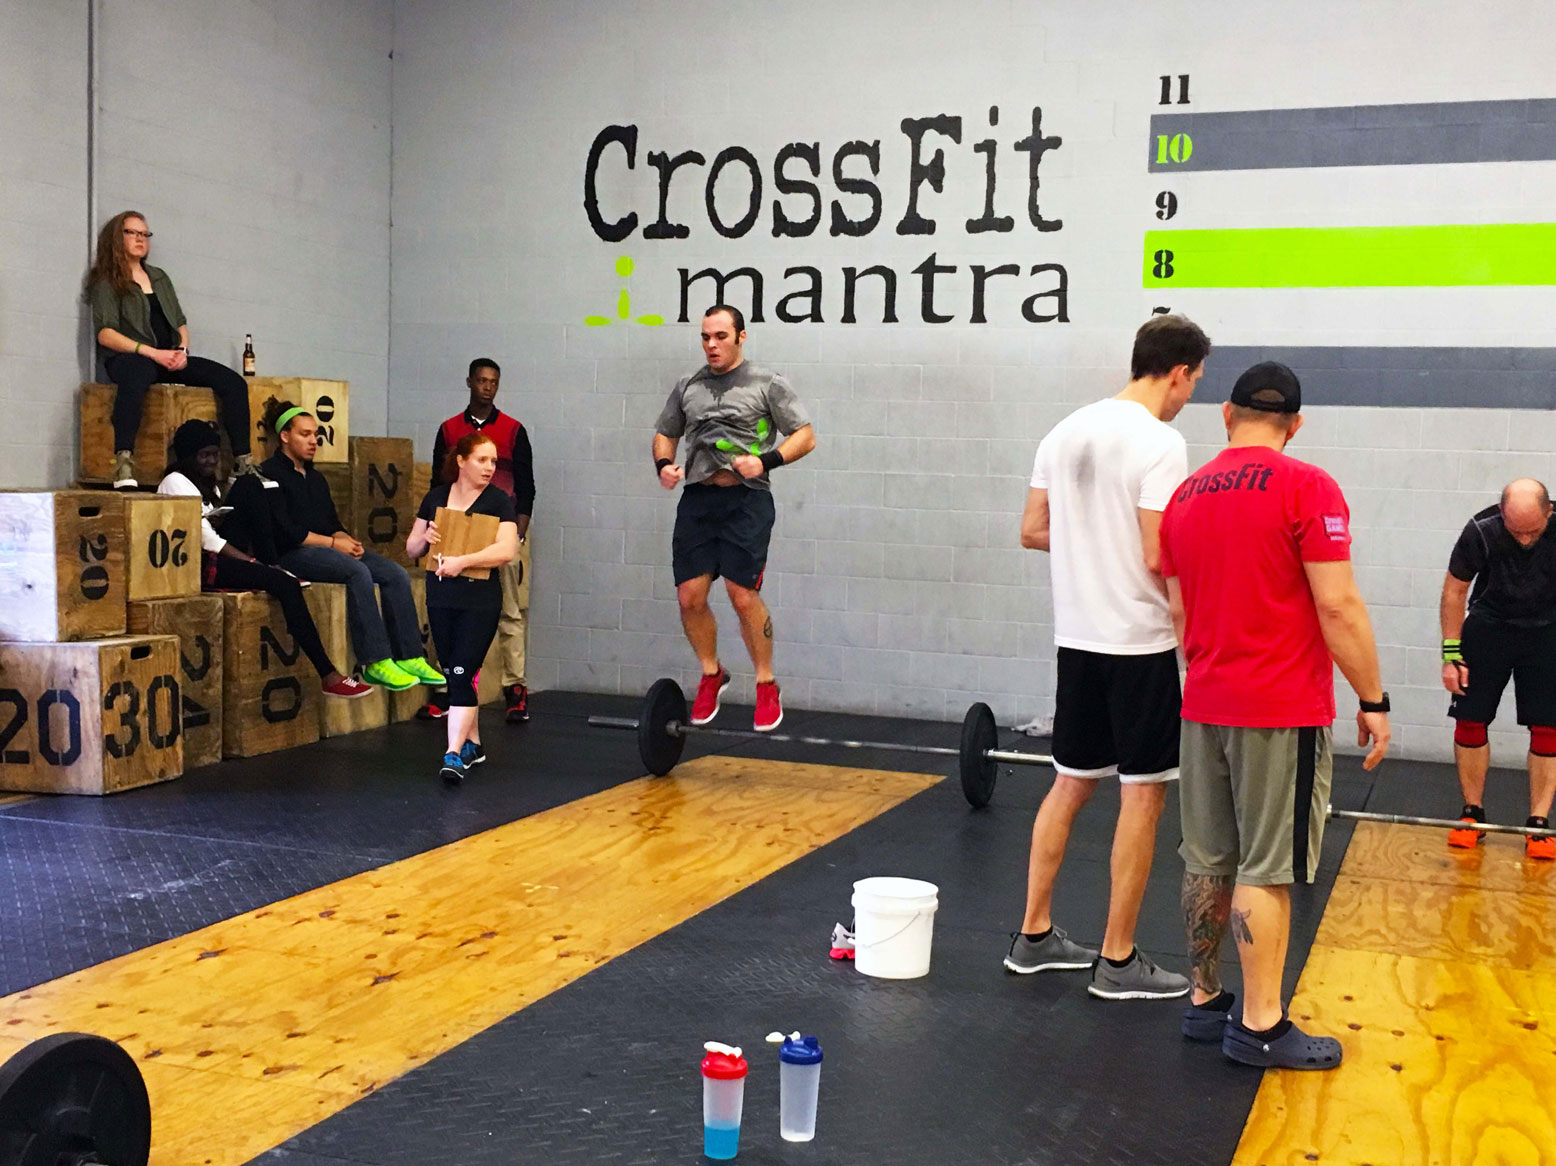 CrossFit-Mantra-Bar-Over-Burpees-Open.jpg